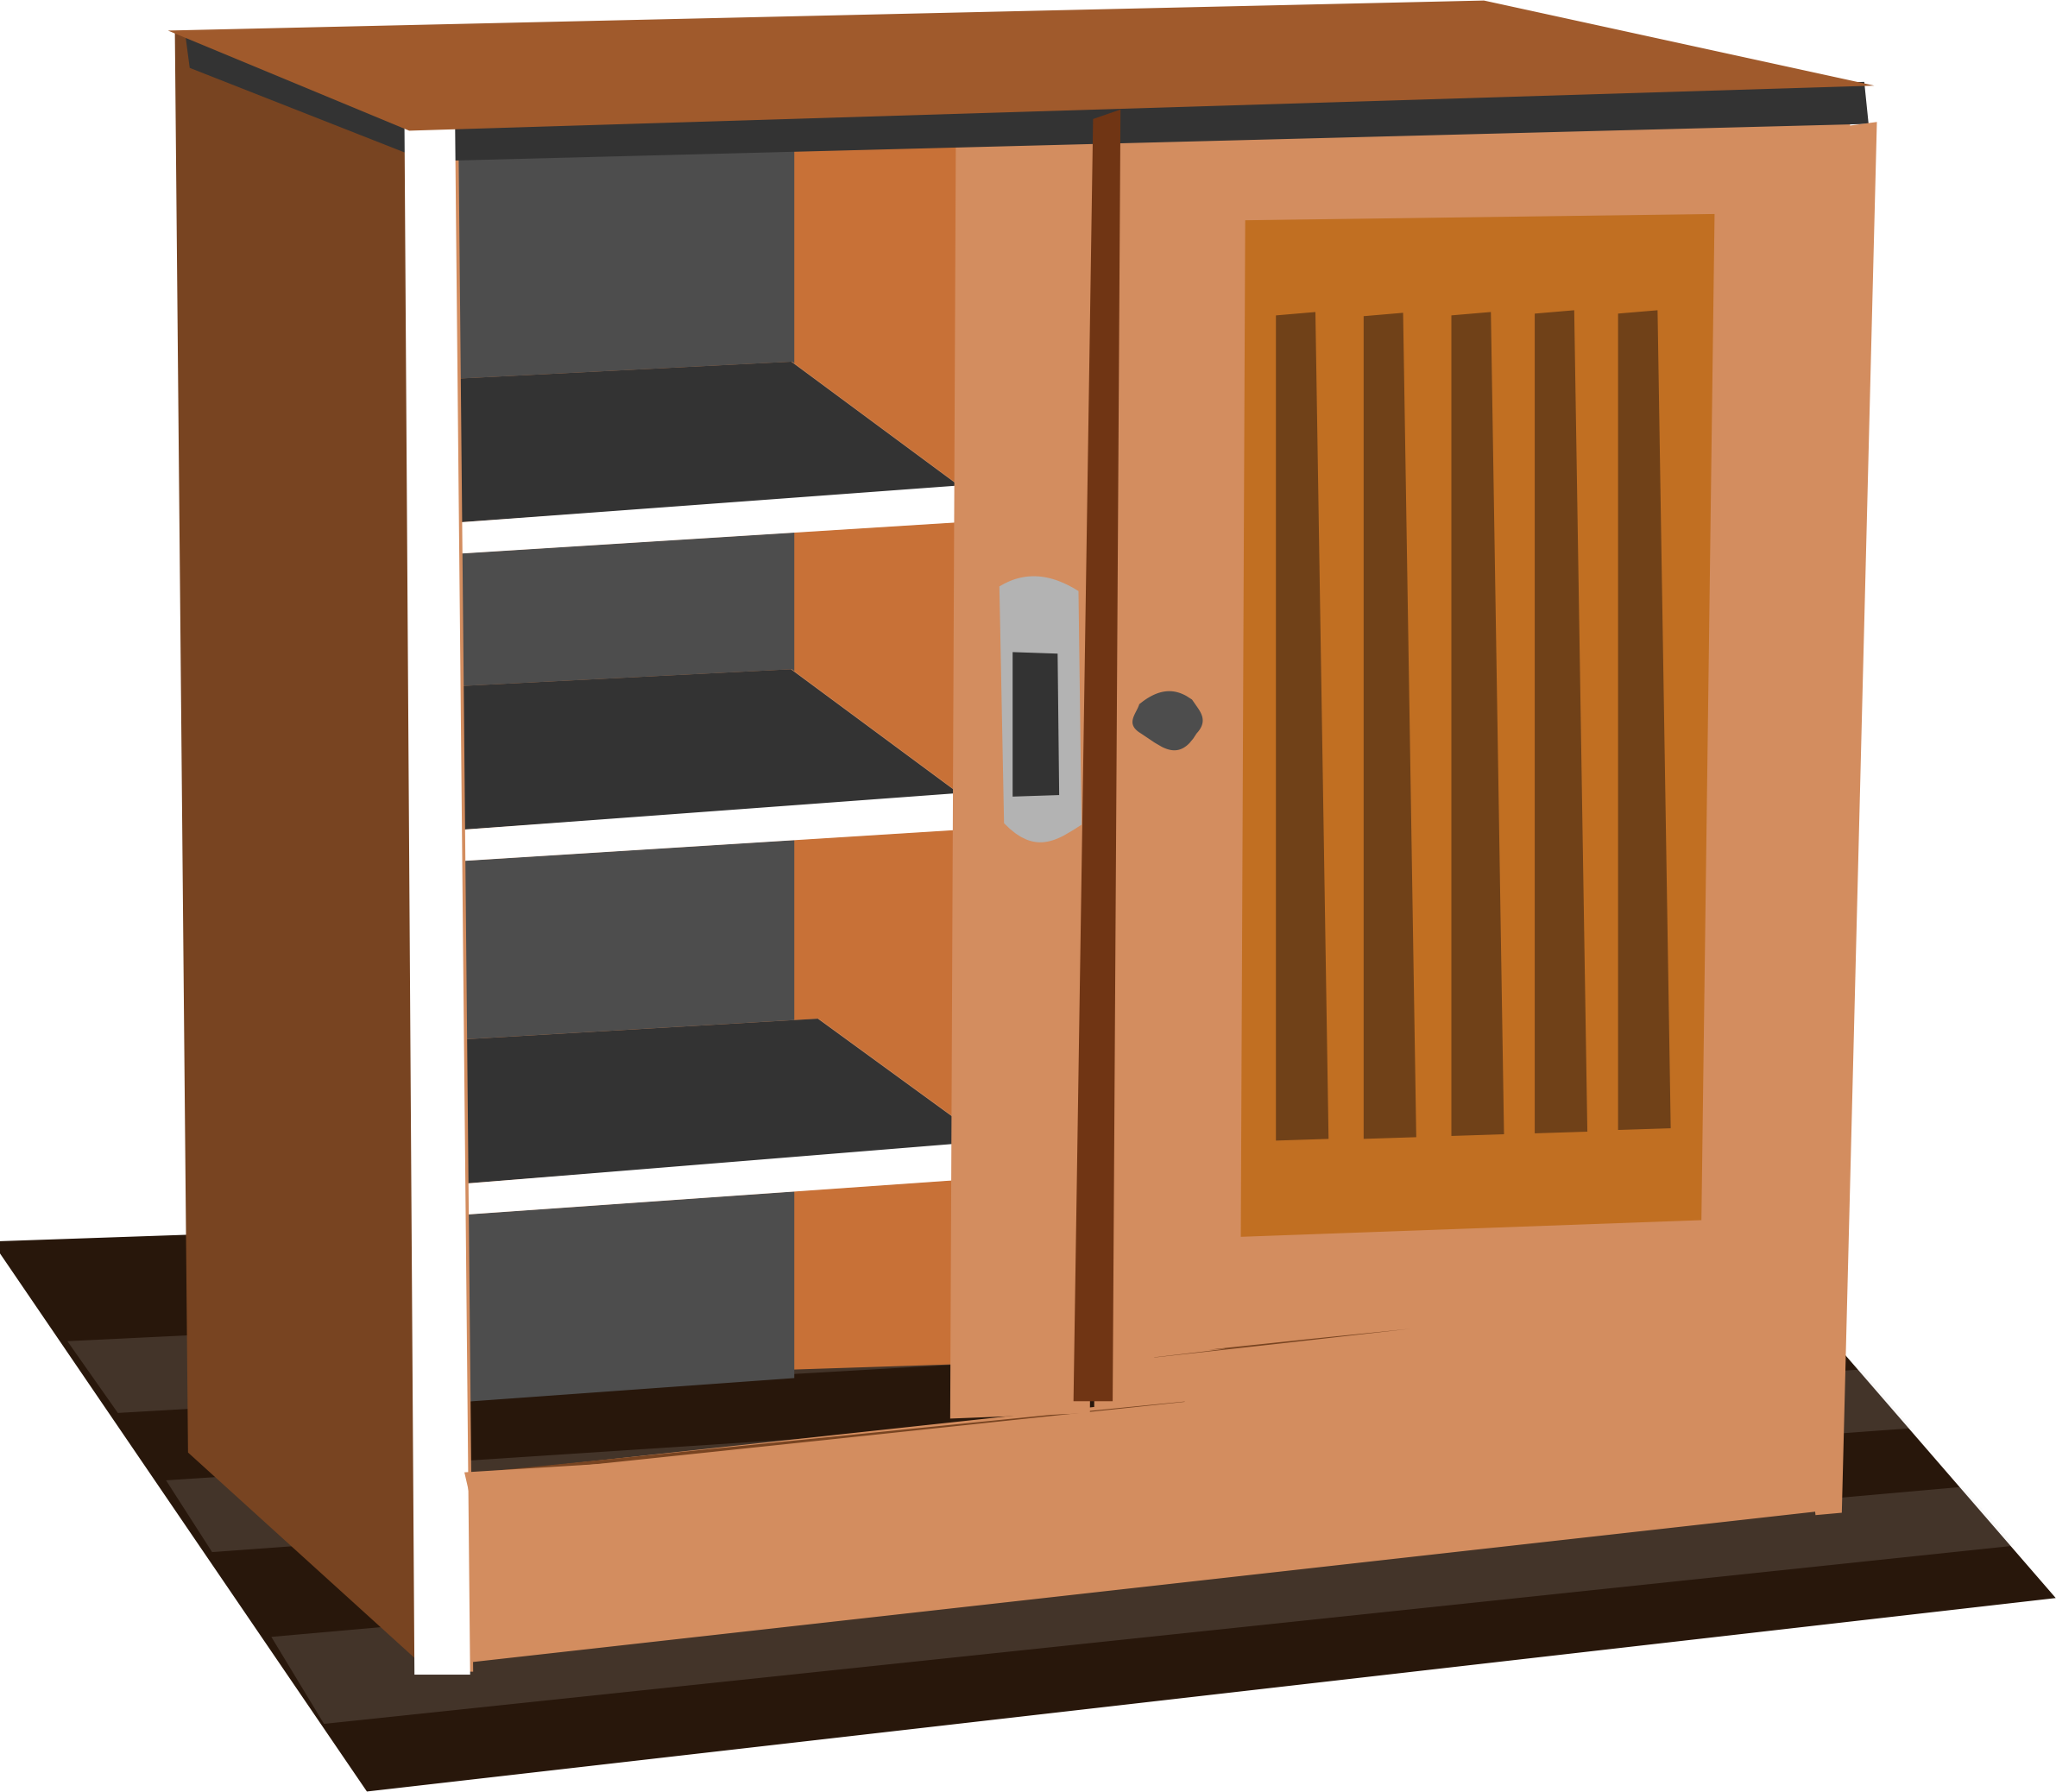 Cupboard PNG Image